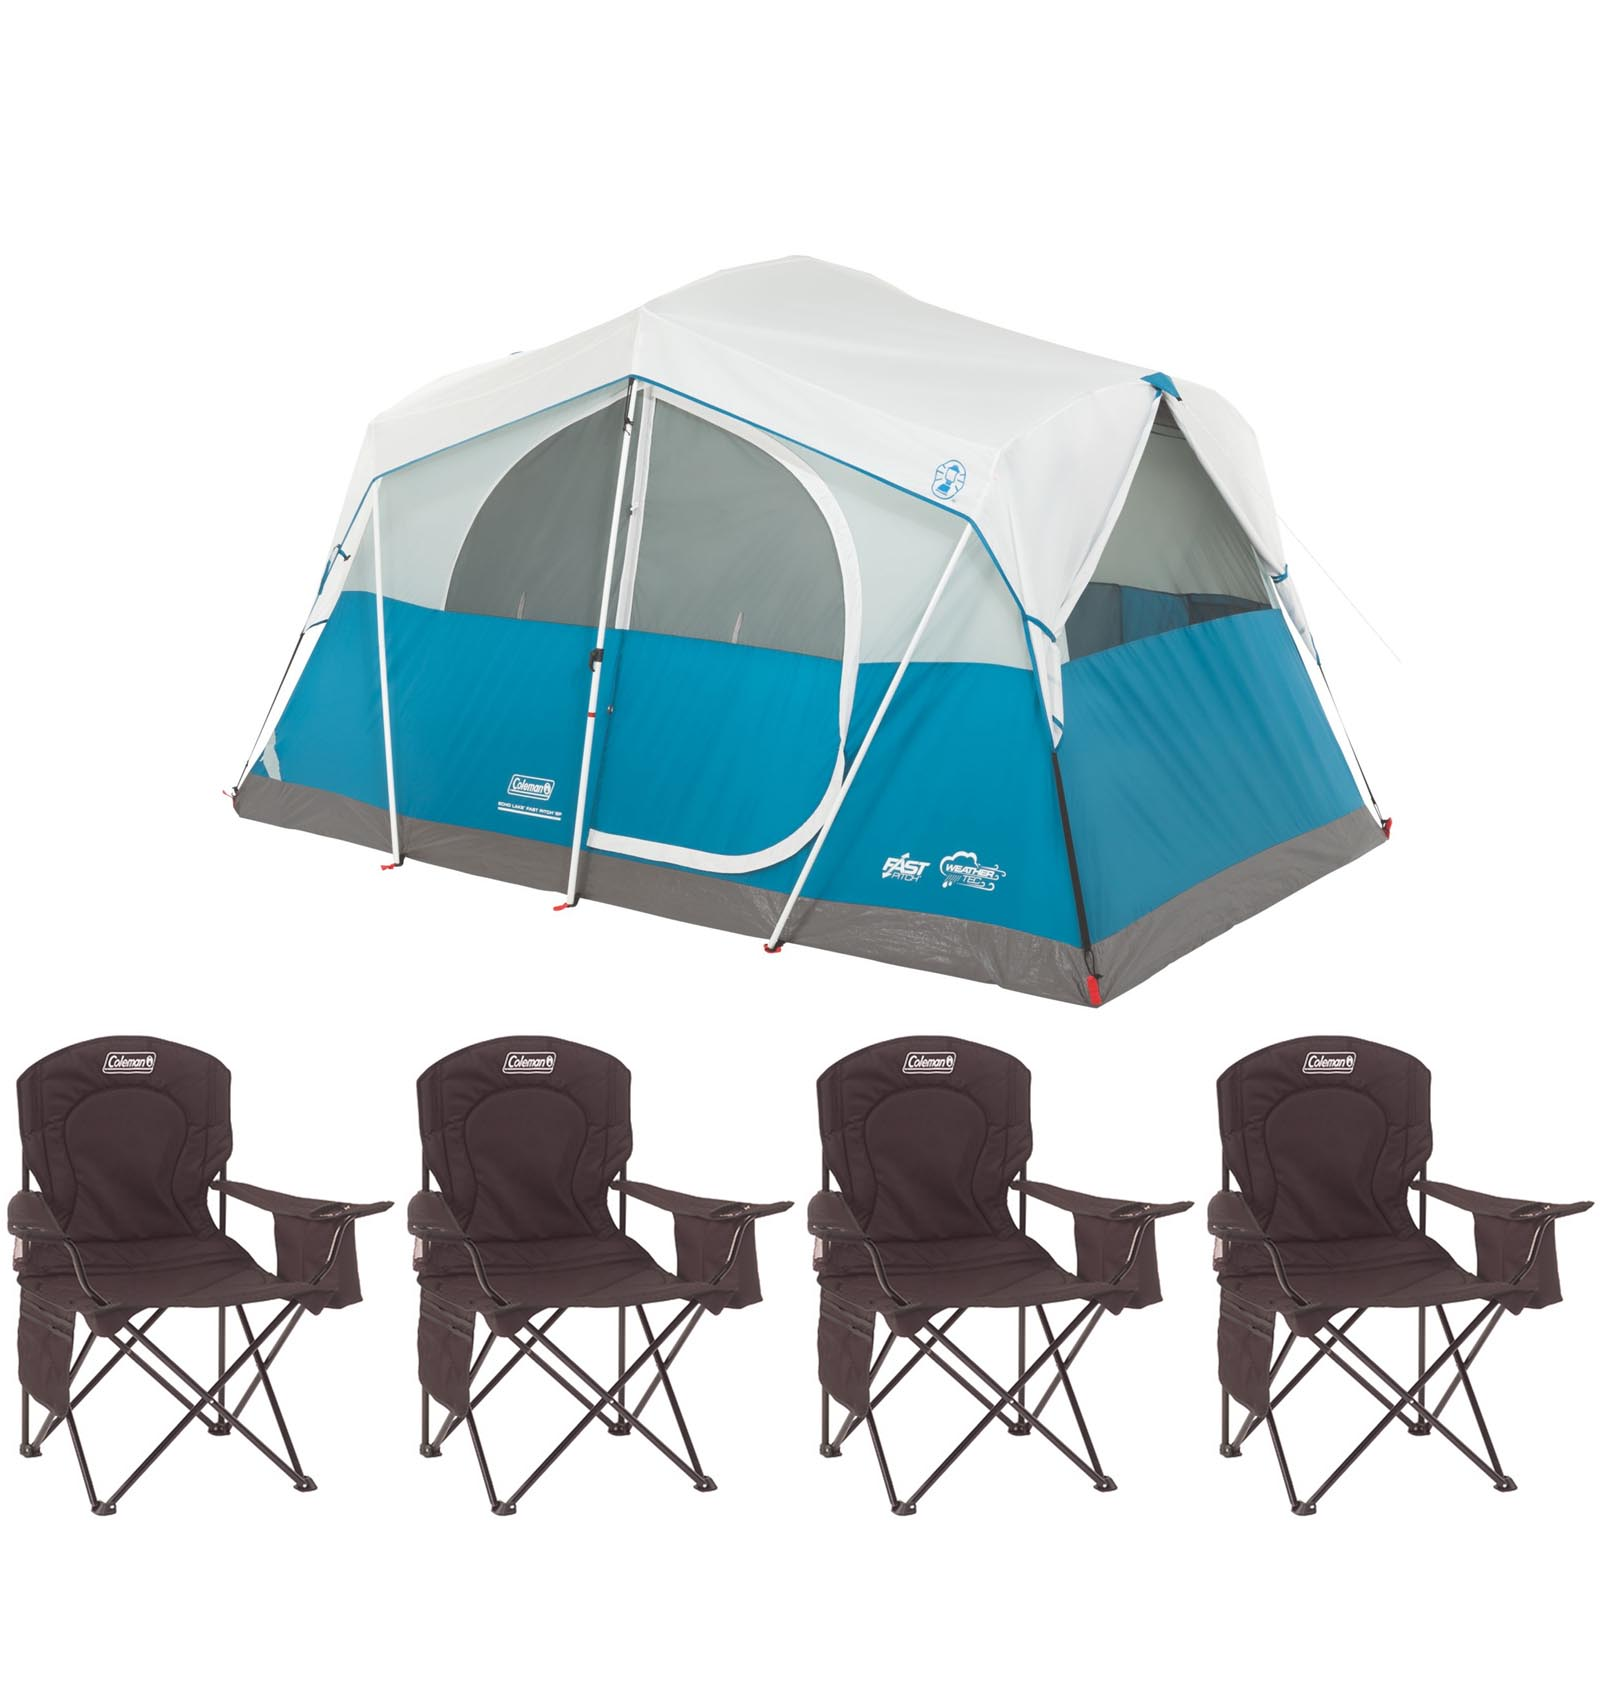 Coleman Echo Lake 6 Person Fast Pitch 12' x 7' Cabin Tent...